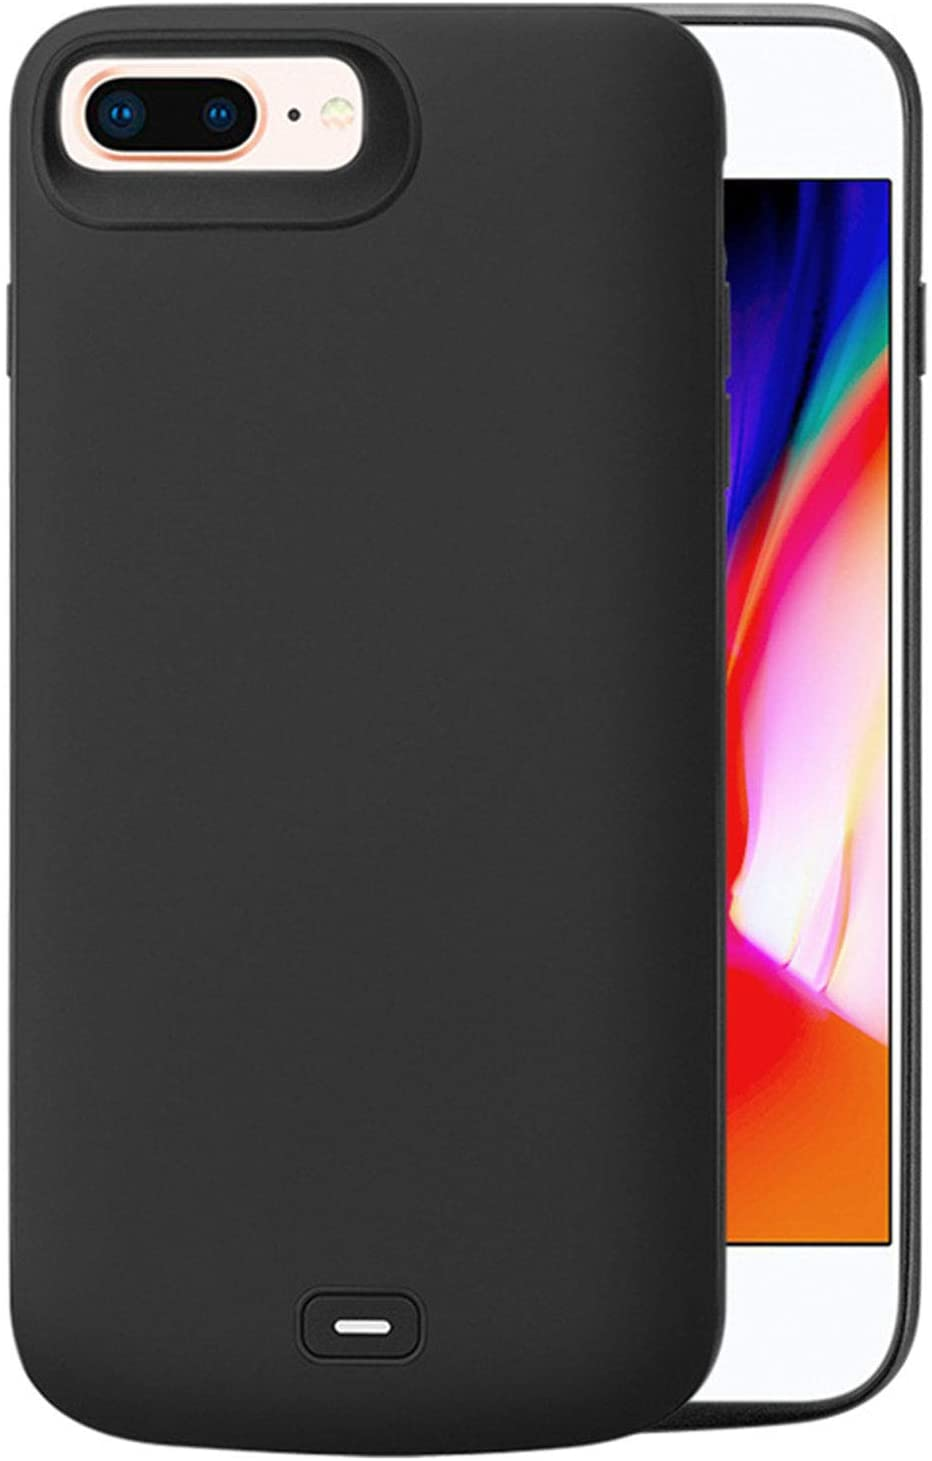 Battery Case for iPhone 6/6S/7/8, HQXHB [5500mAh] Charger Case for iPhone 6 6S 7 8 Protective Portable Charging Case Rechargeable Extended Battery Pack (4.7 inch) Support Headphone - Black